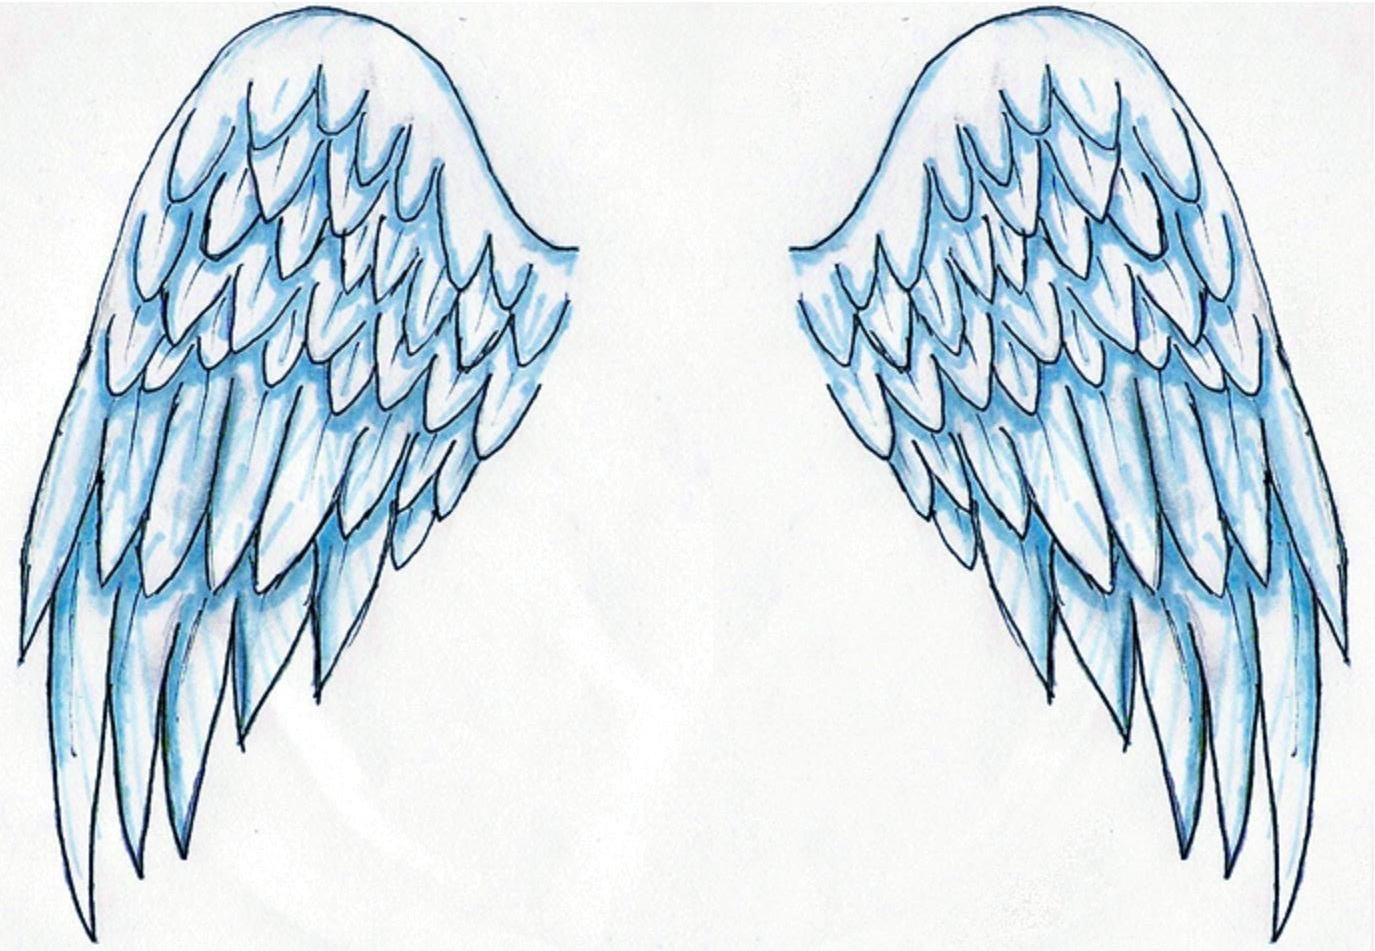 Angel Wings Tattoos I Like Pinterest ngeles Tatuajes De Alas